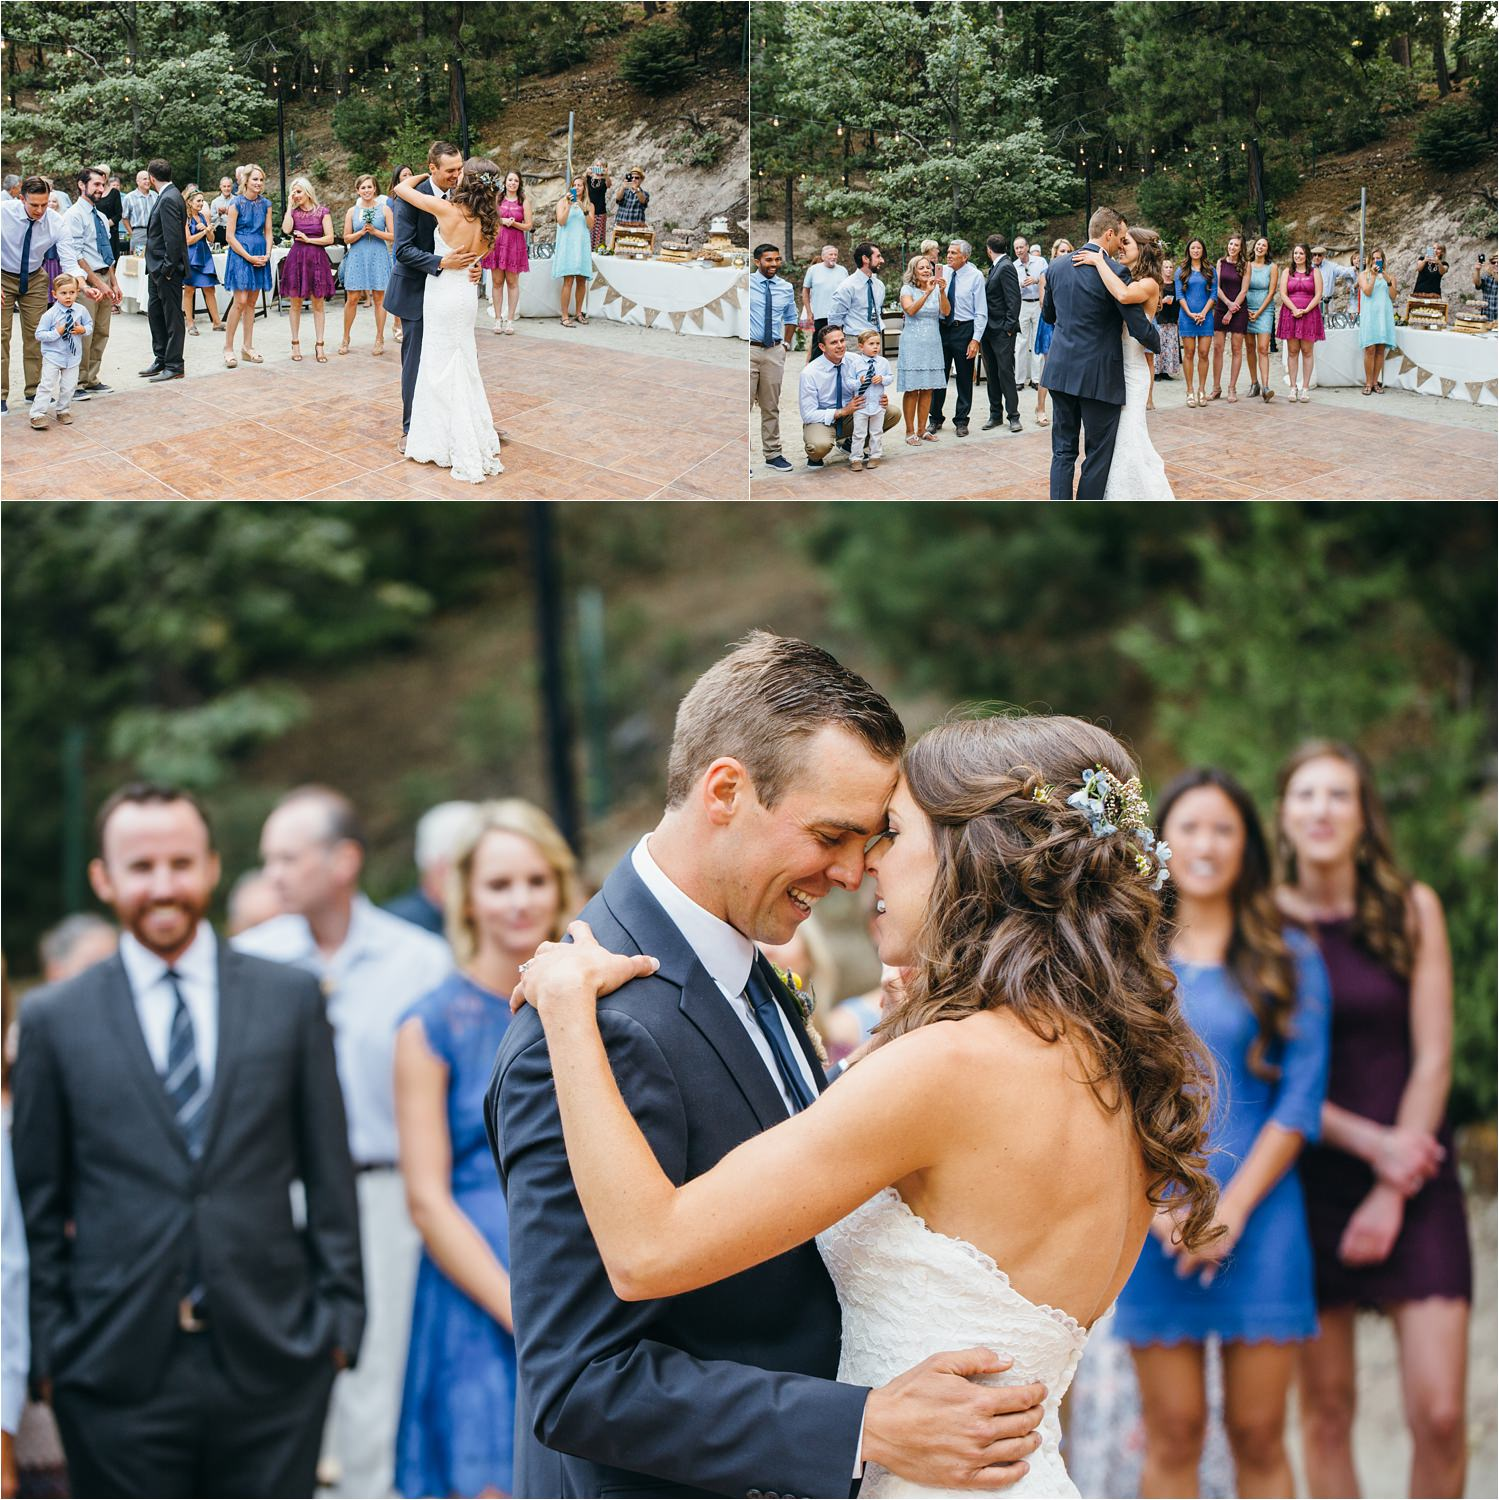 Romantic First Dance - Bride and Groom First Dance - Dan and Shay Wedding Song - https://brittneyhannonphotography.com